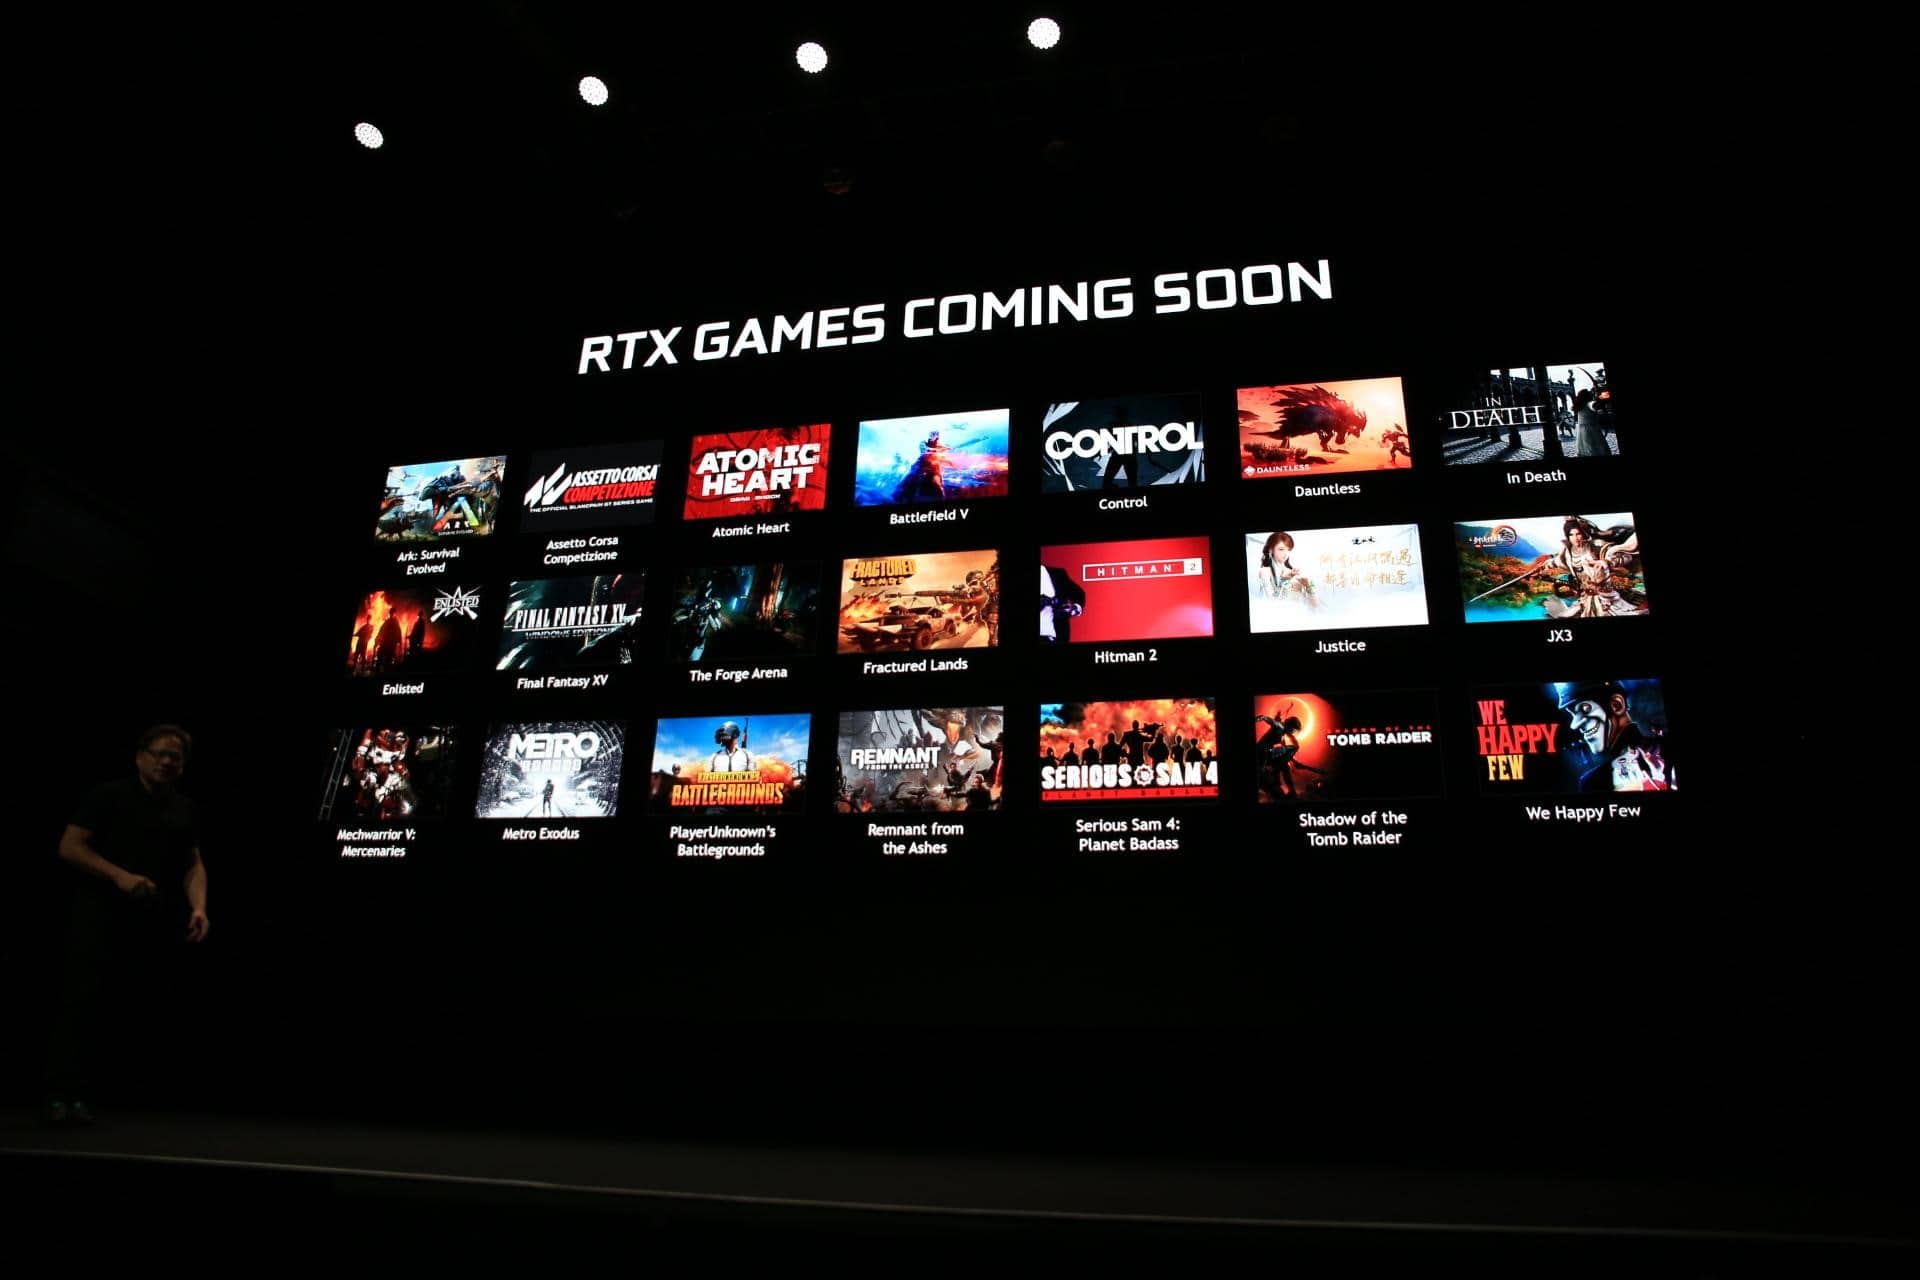 rtx-games-coming-soon.jpg